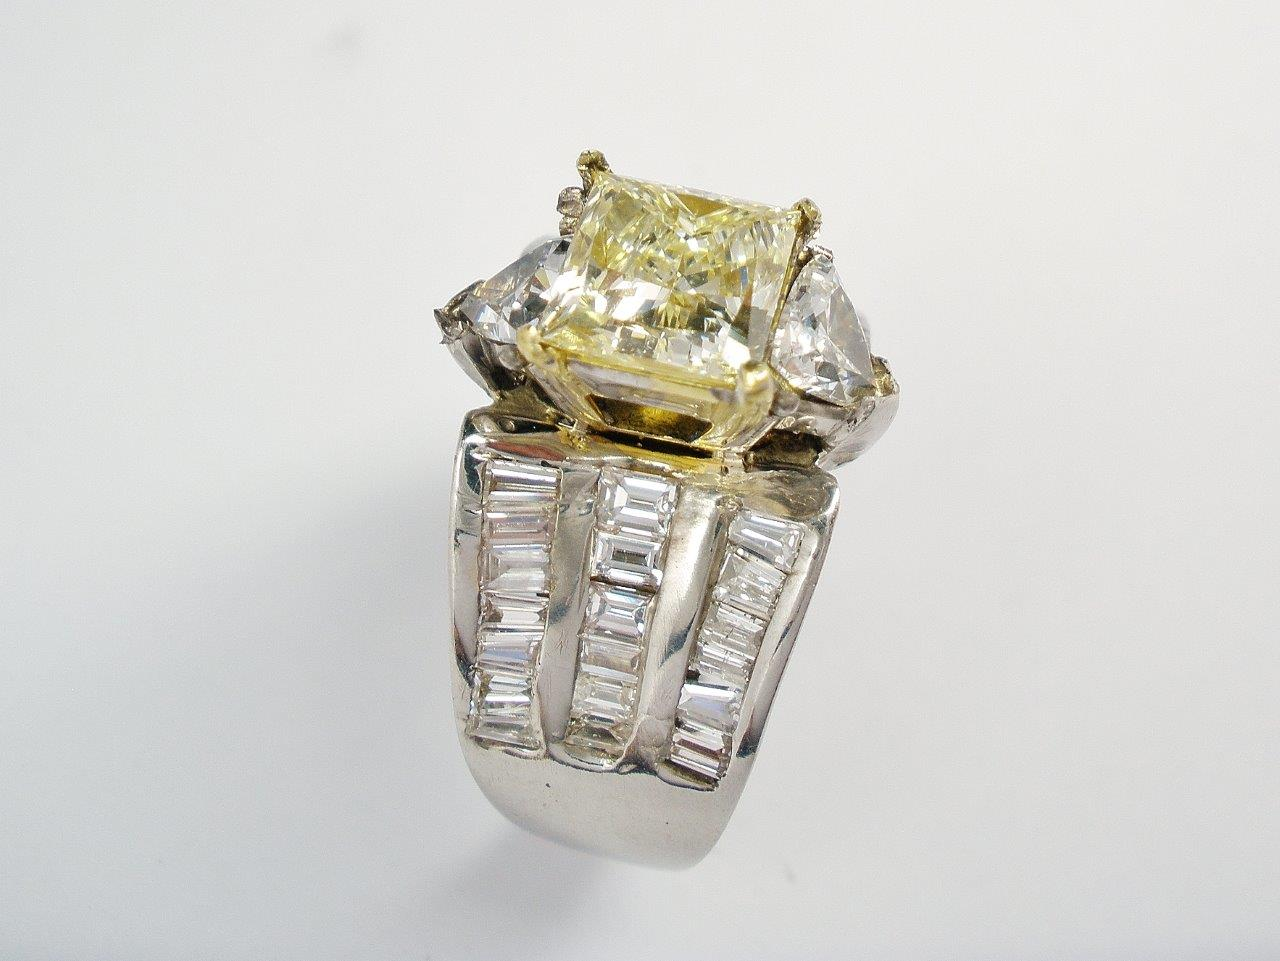 A 2ct. champagne coloured princess cut diamond with a white trilliant cut diamond set above and below and a broad 18ct. white gold shank channel set with 3 rows of baguette diamonds.